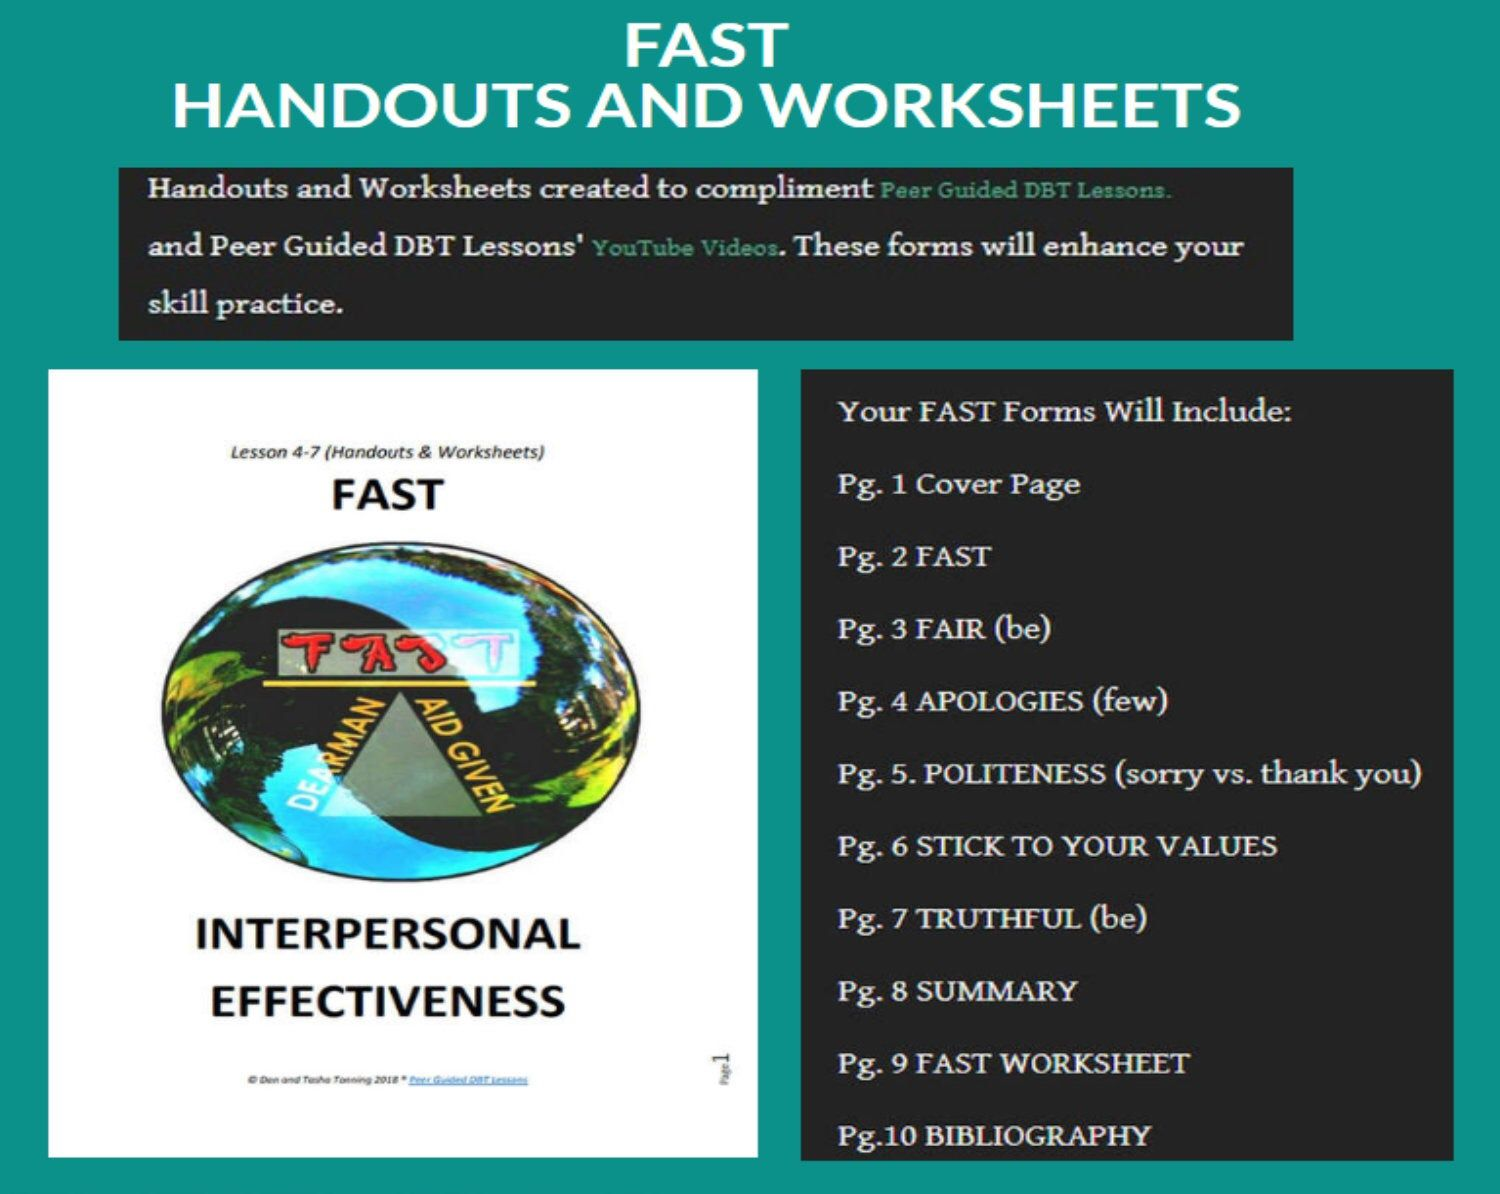 Dbt Lesson 4 7 Interpersonal Effectiveness F A S T